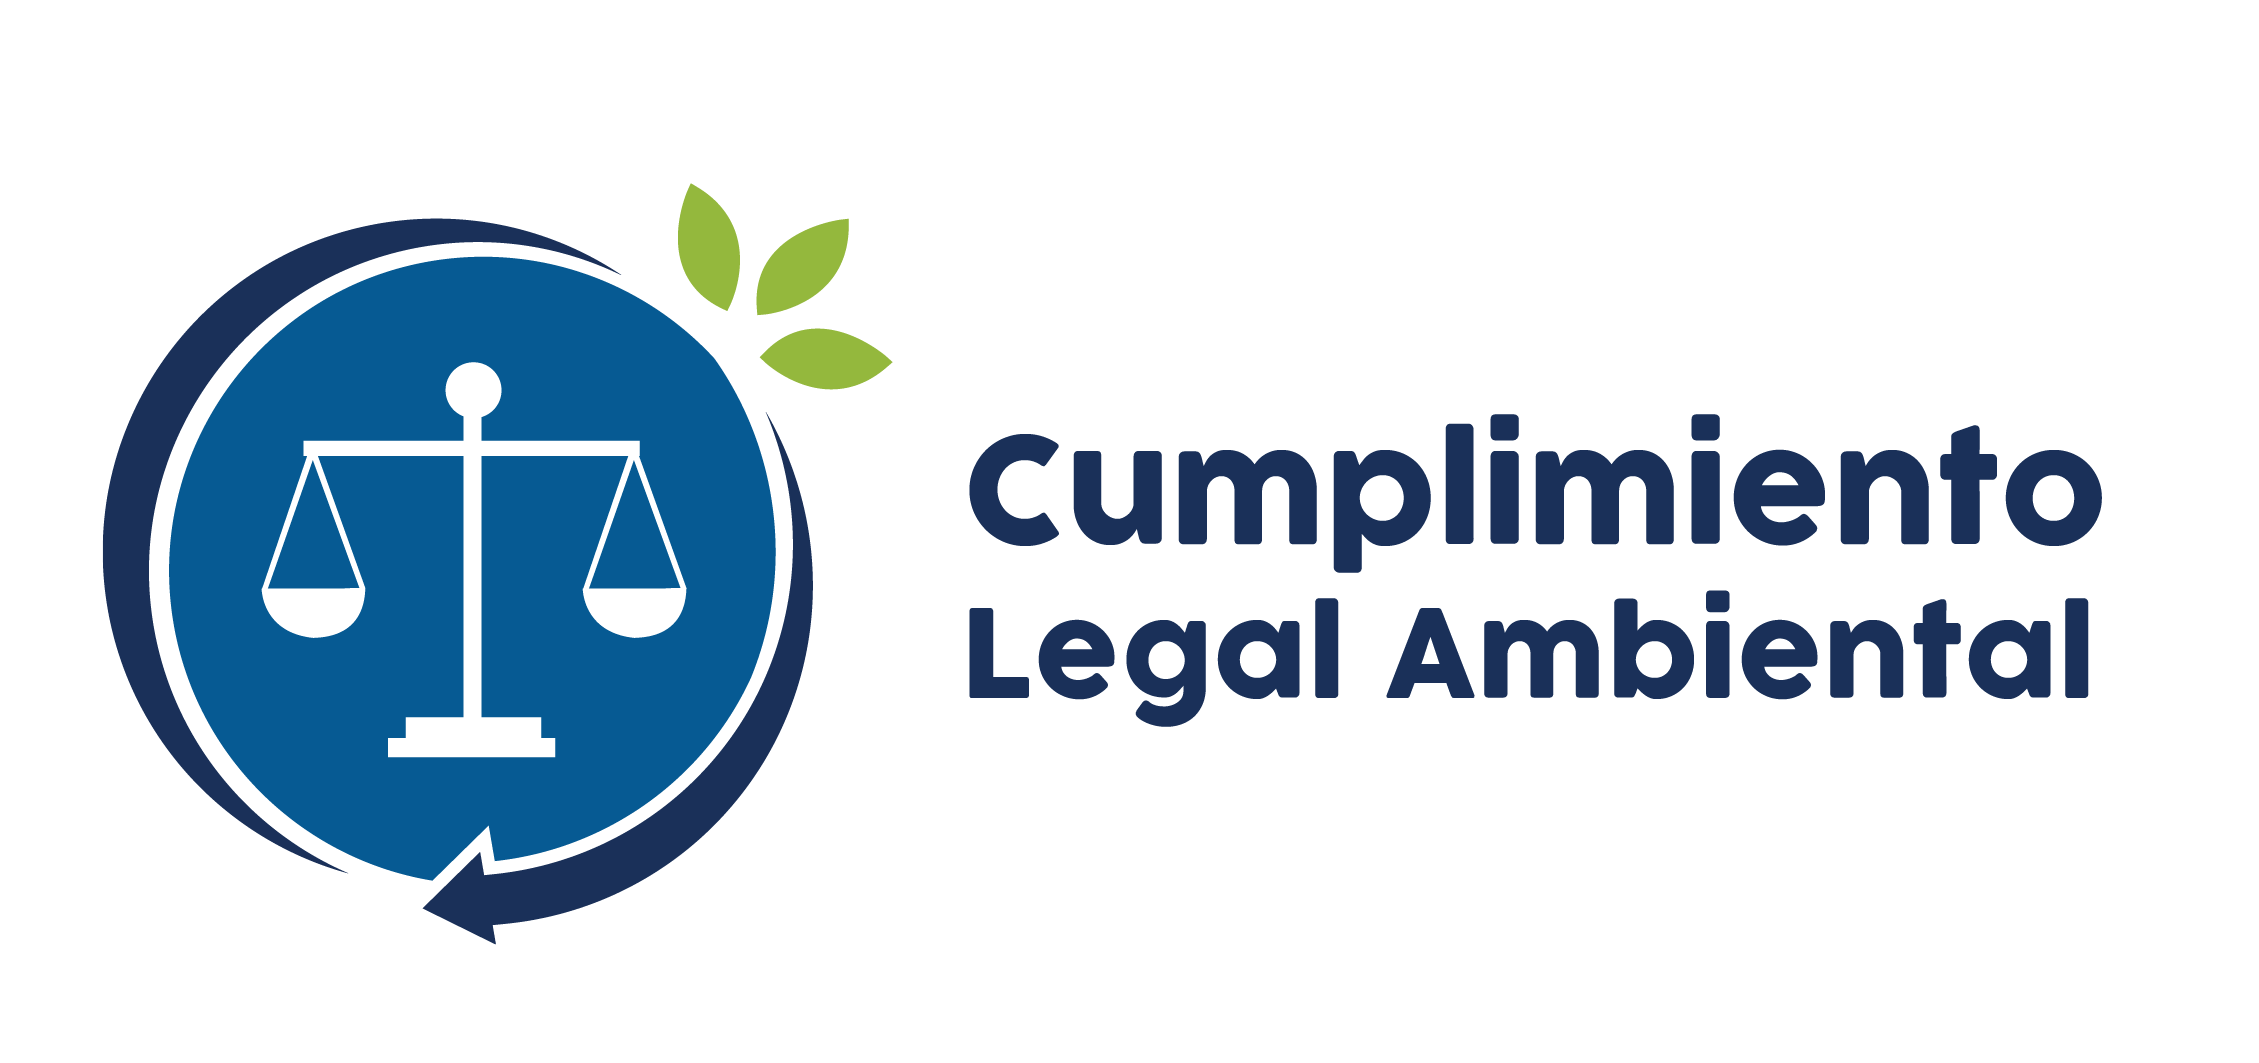 Cumplimiento legal ambiental